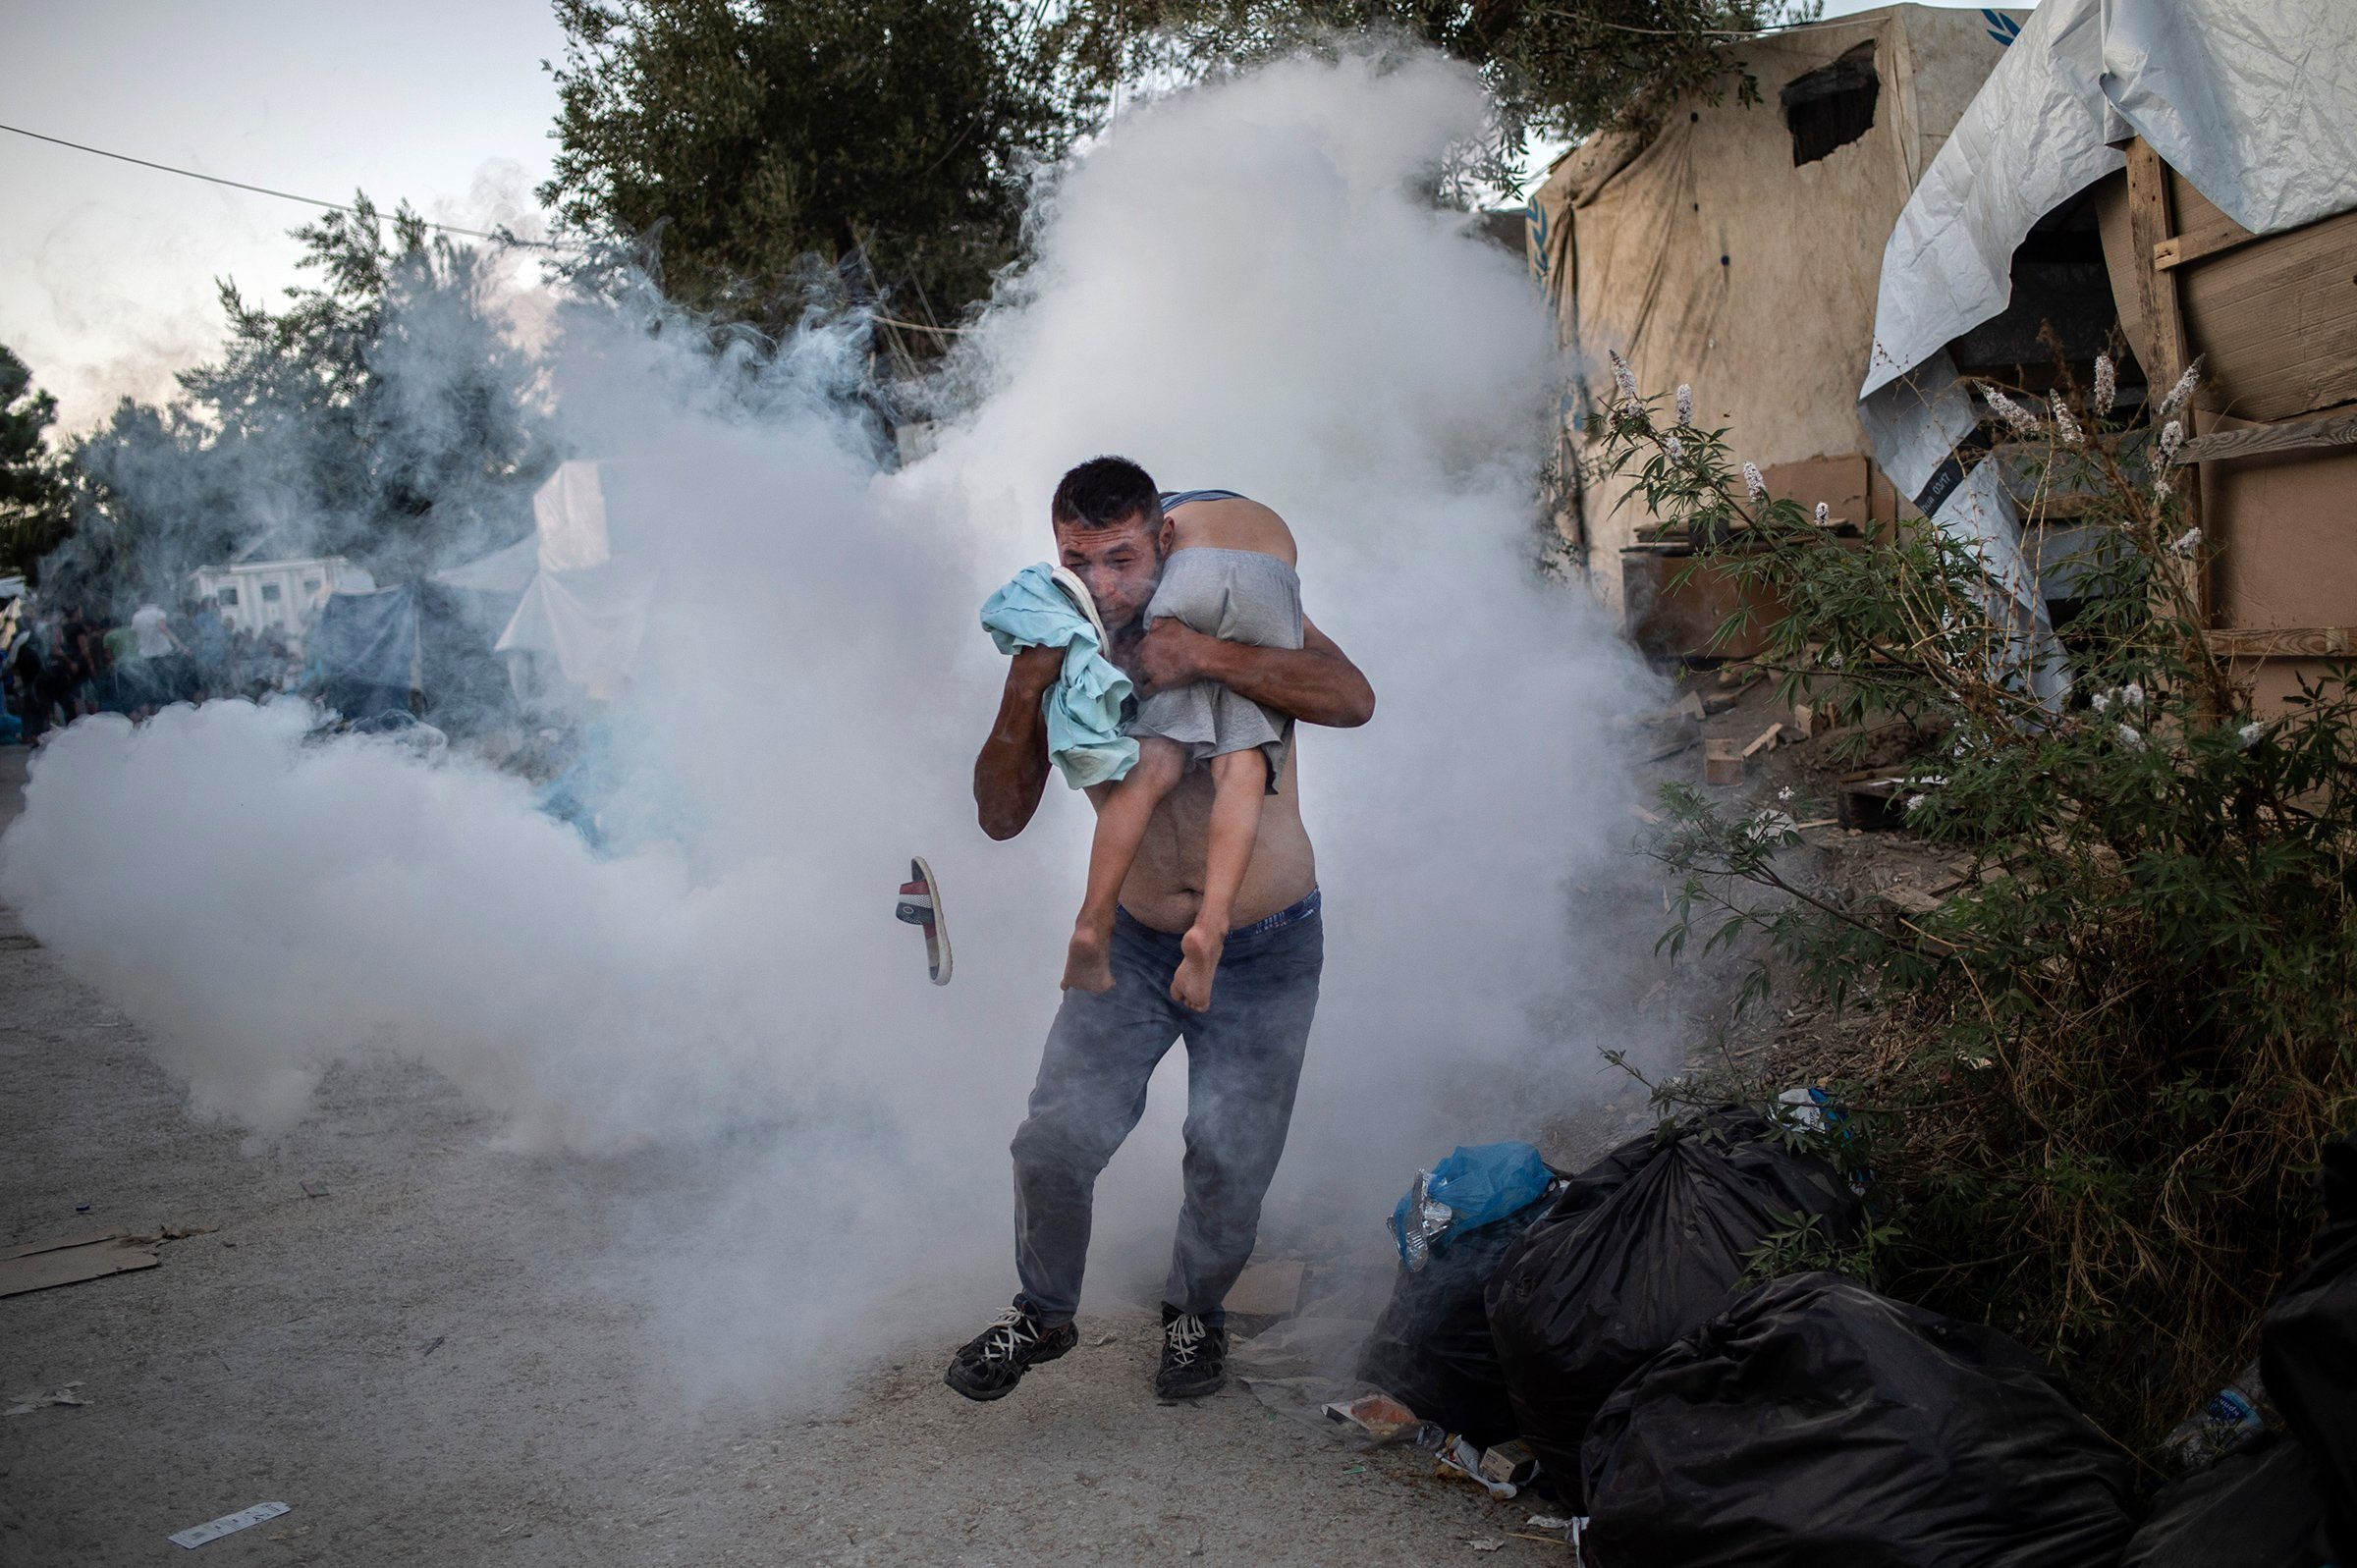 A man holds a boy during clashes with police outside the refugee camp of Moria on the Greek island of Lesbos on Sept. 29.